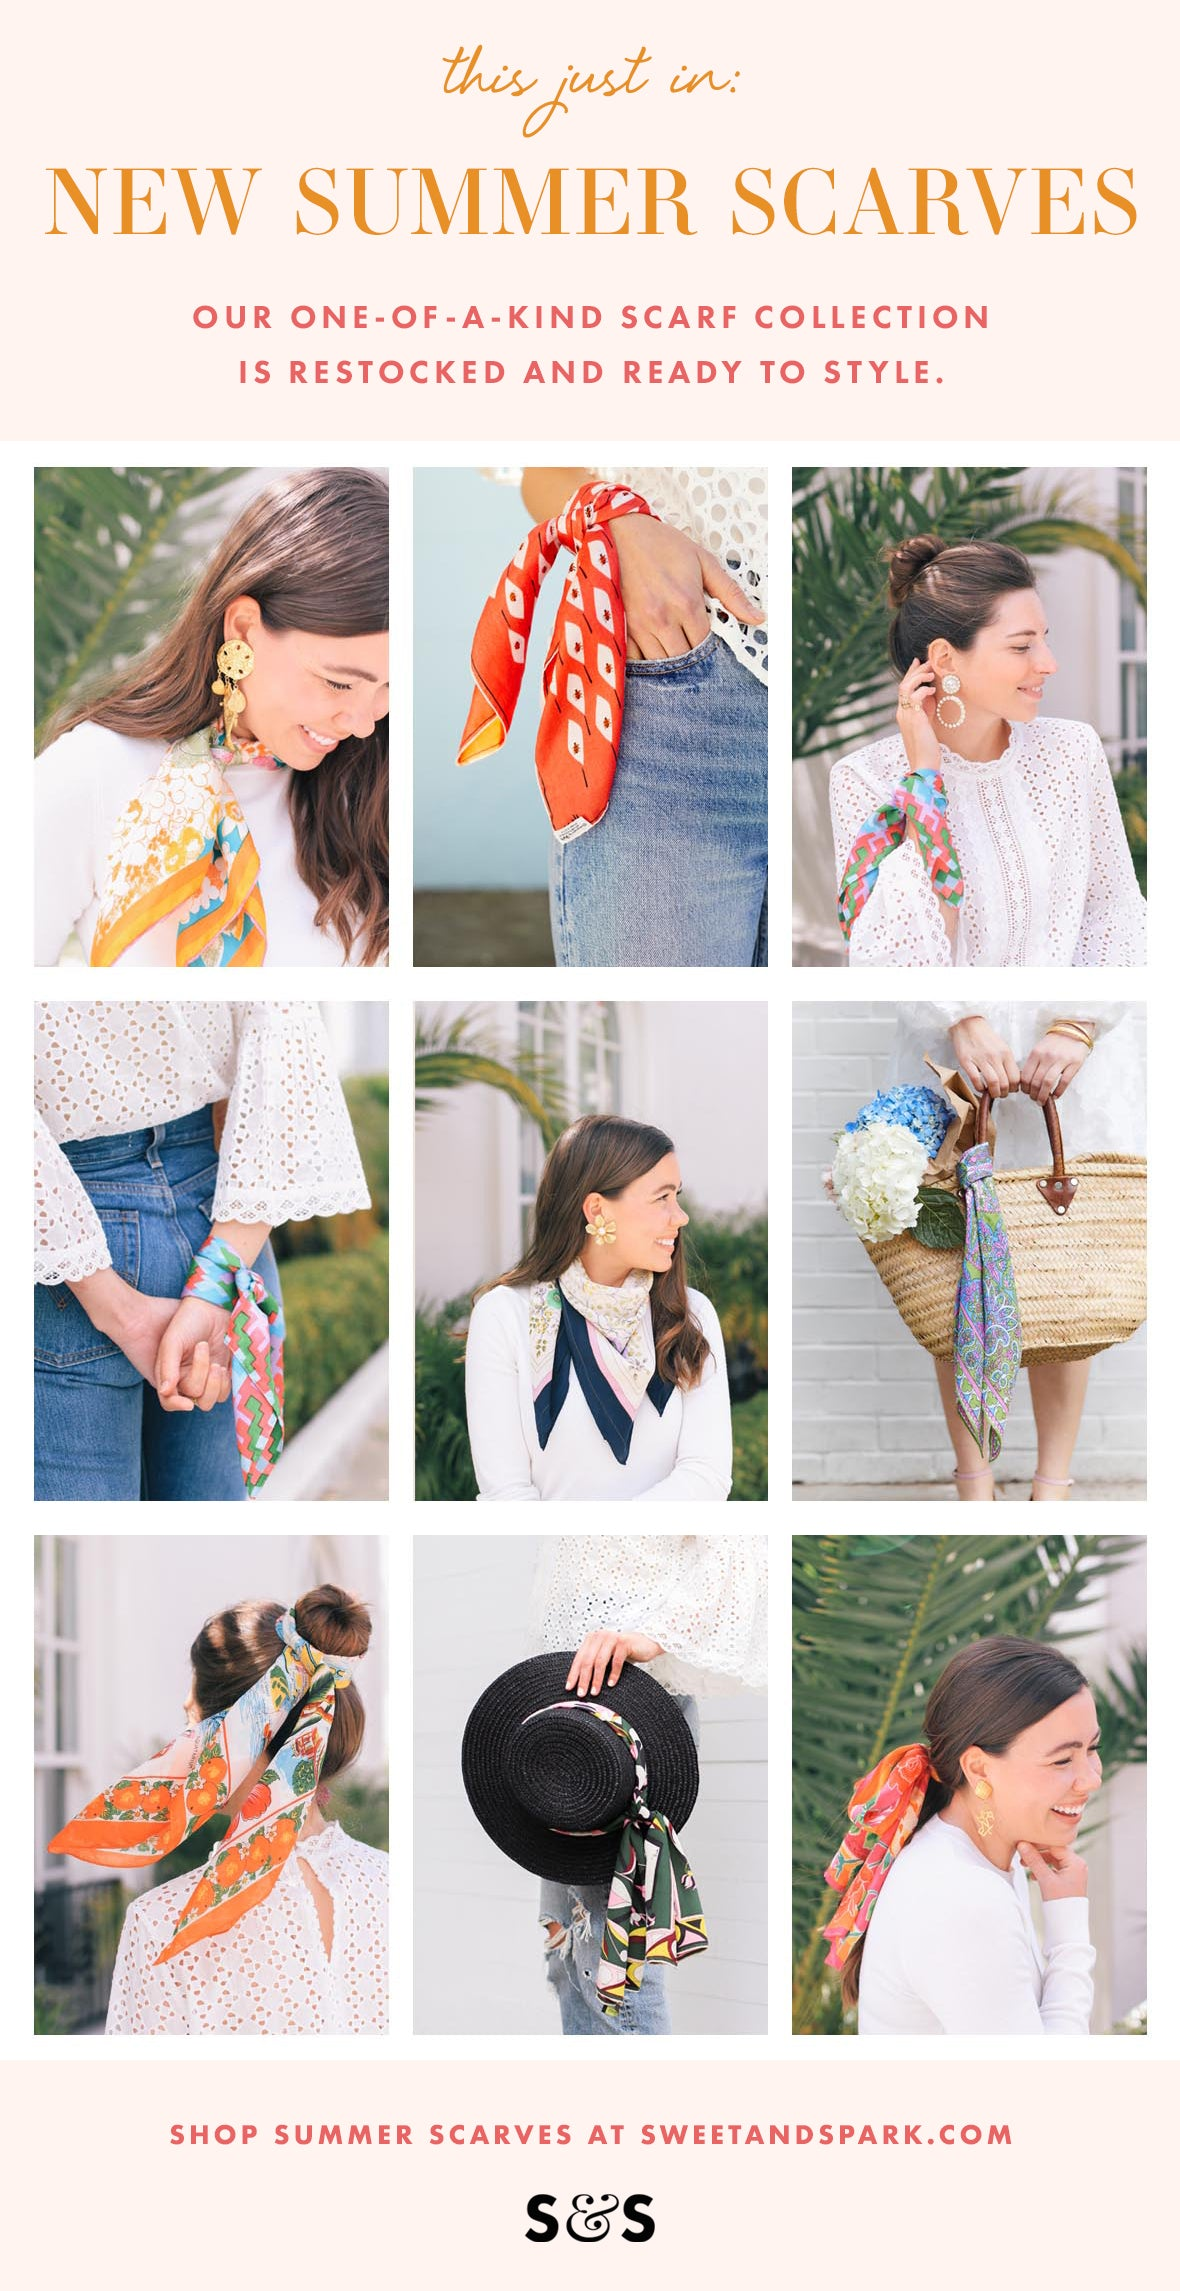 Summer scarf styling tips from Sweet & Spark.